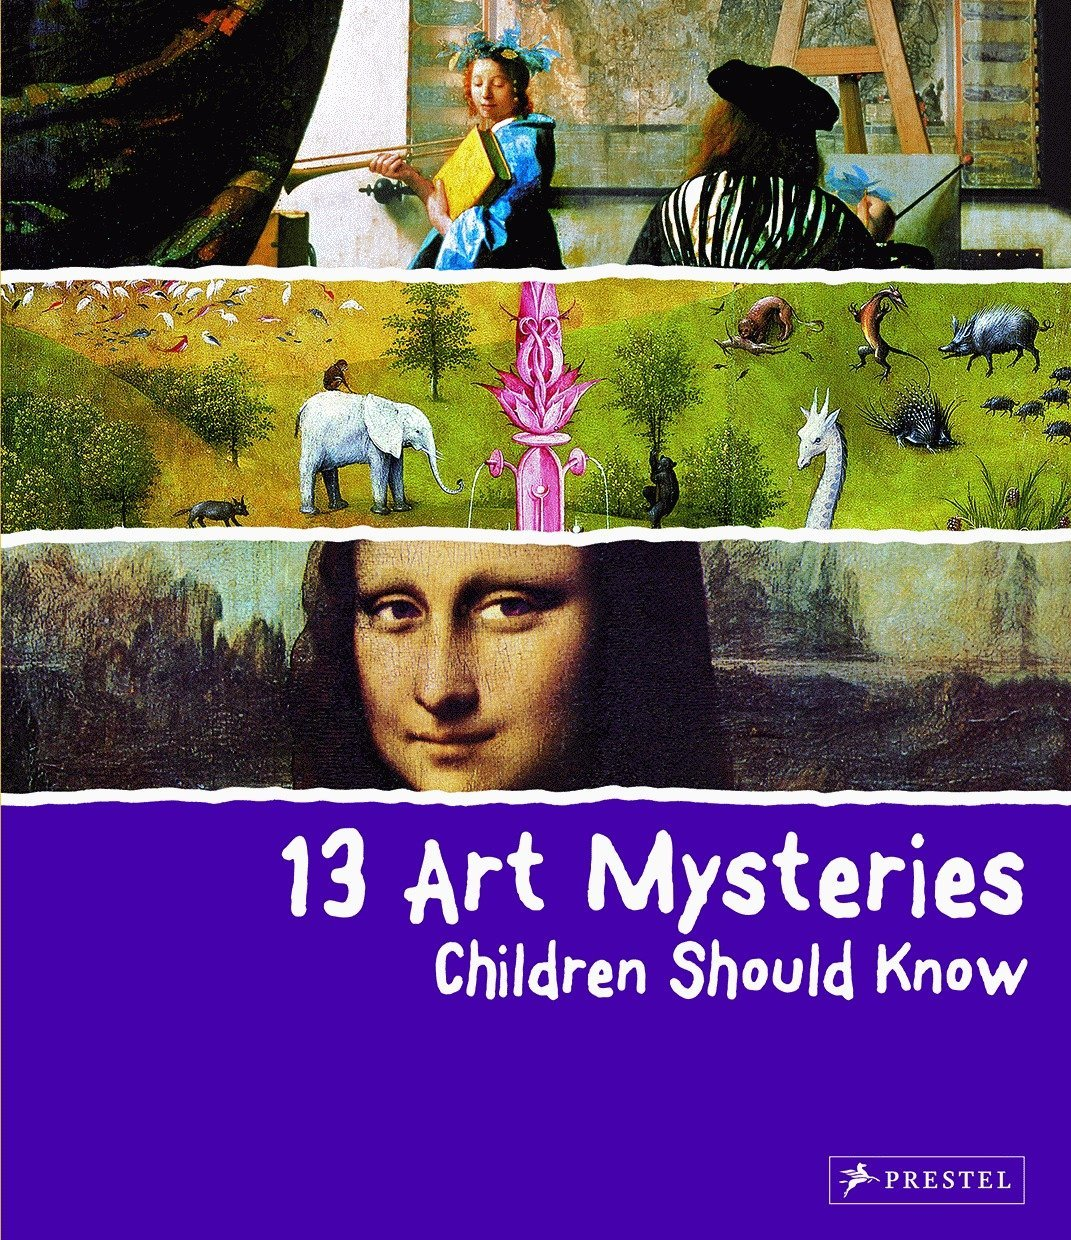 13 Art Mysteries Children Should Know by Prestel Publishing (Image #1)